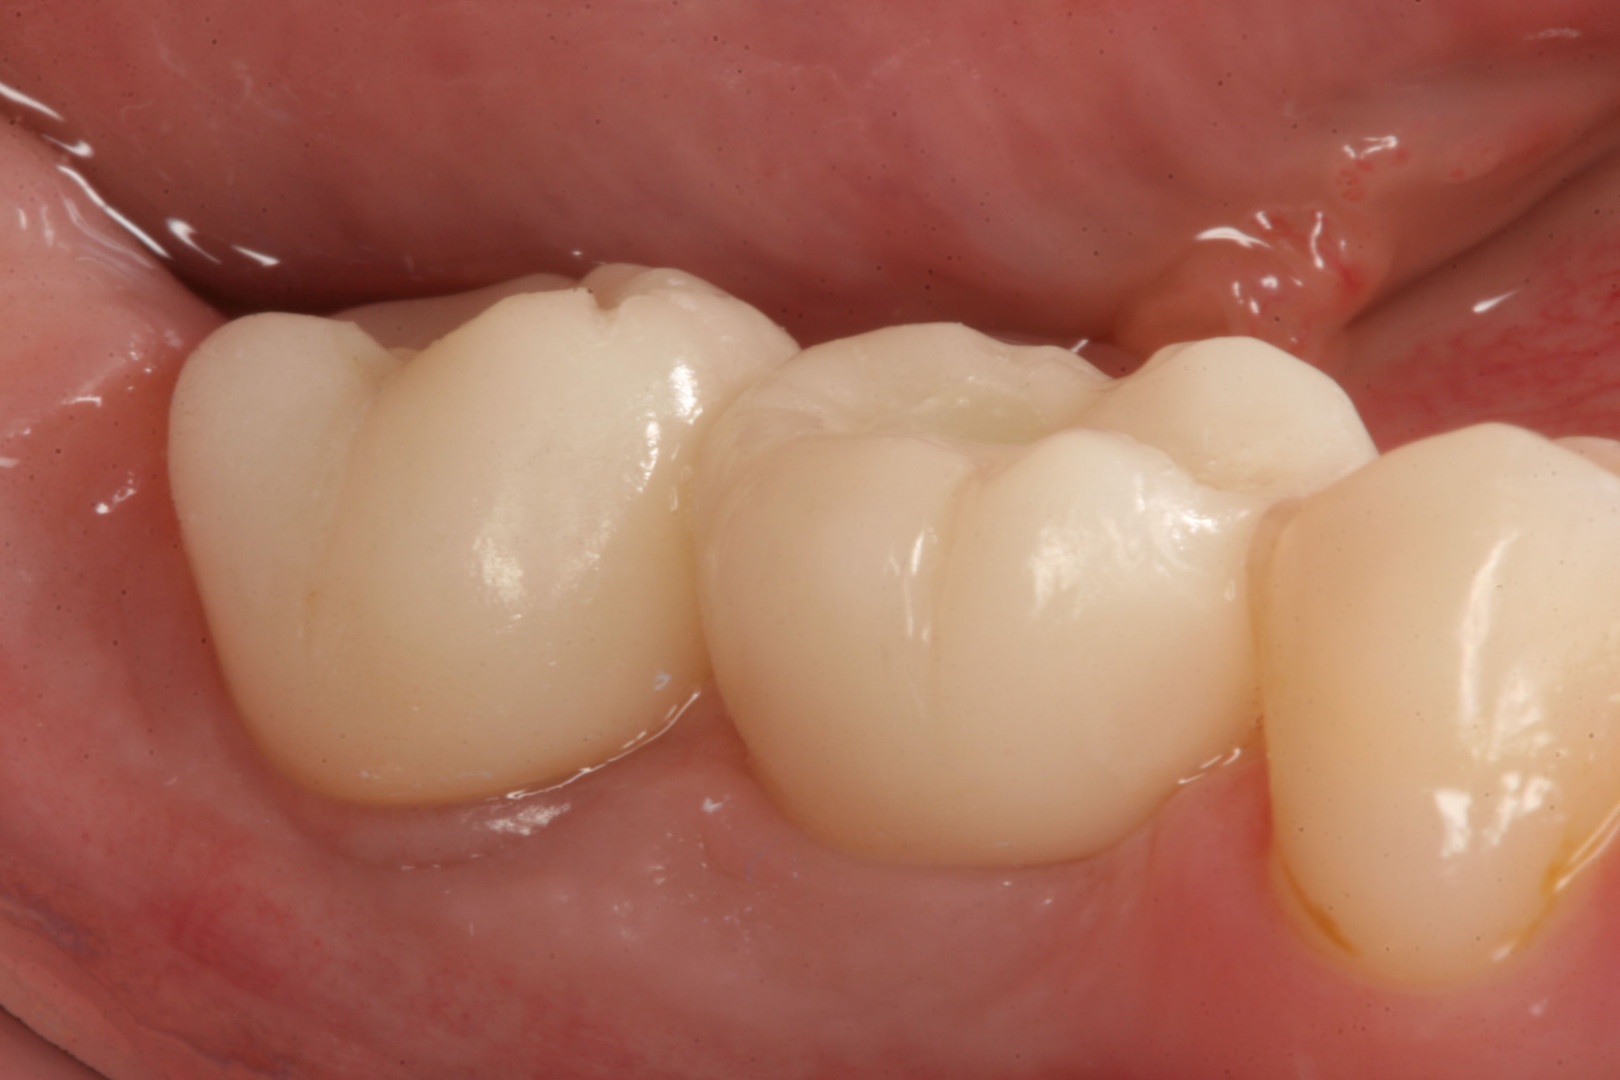 Porcelain implant crowns After tretment.